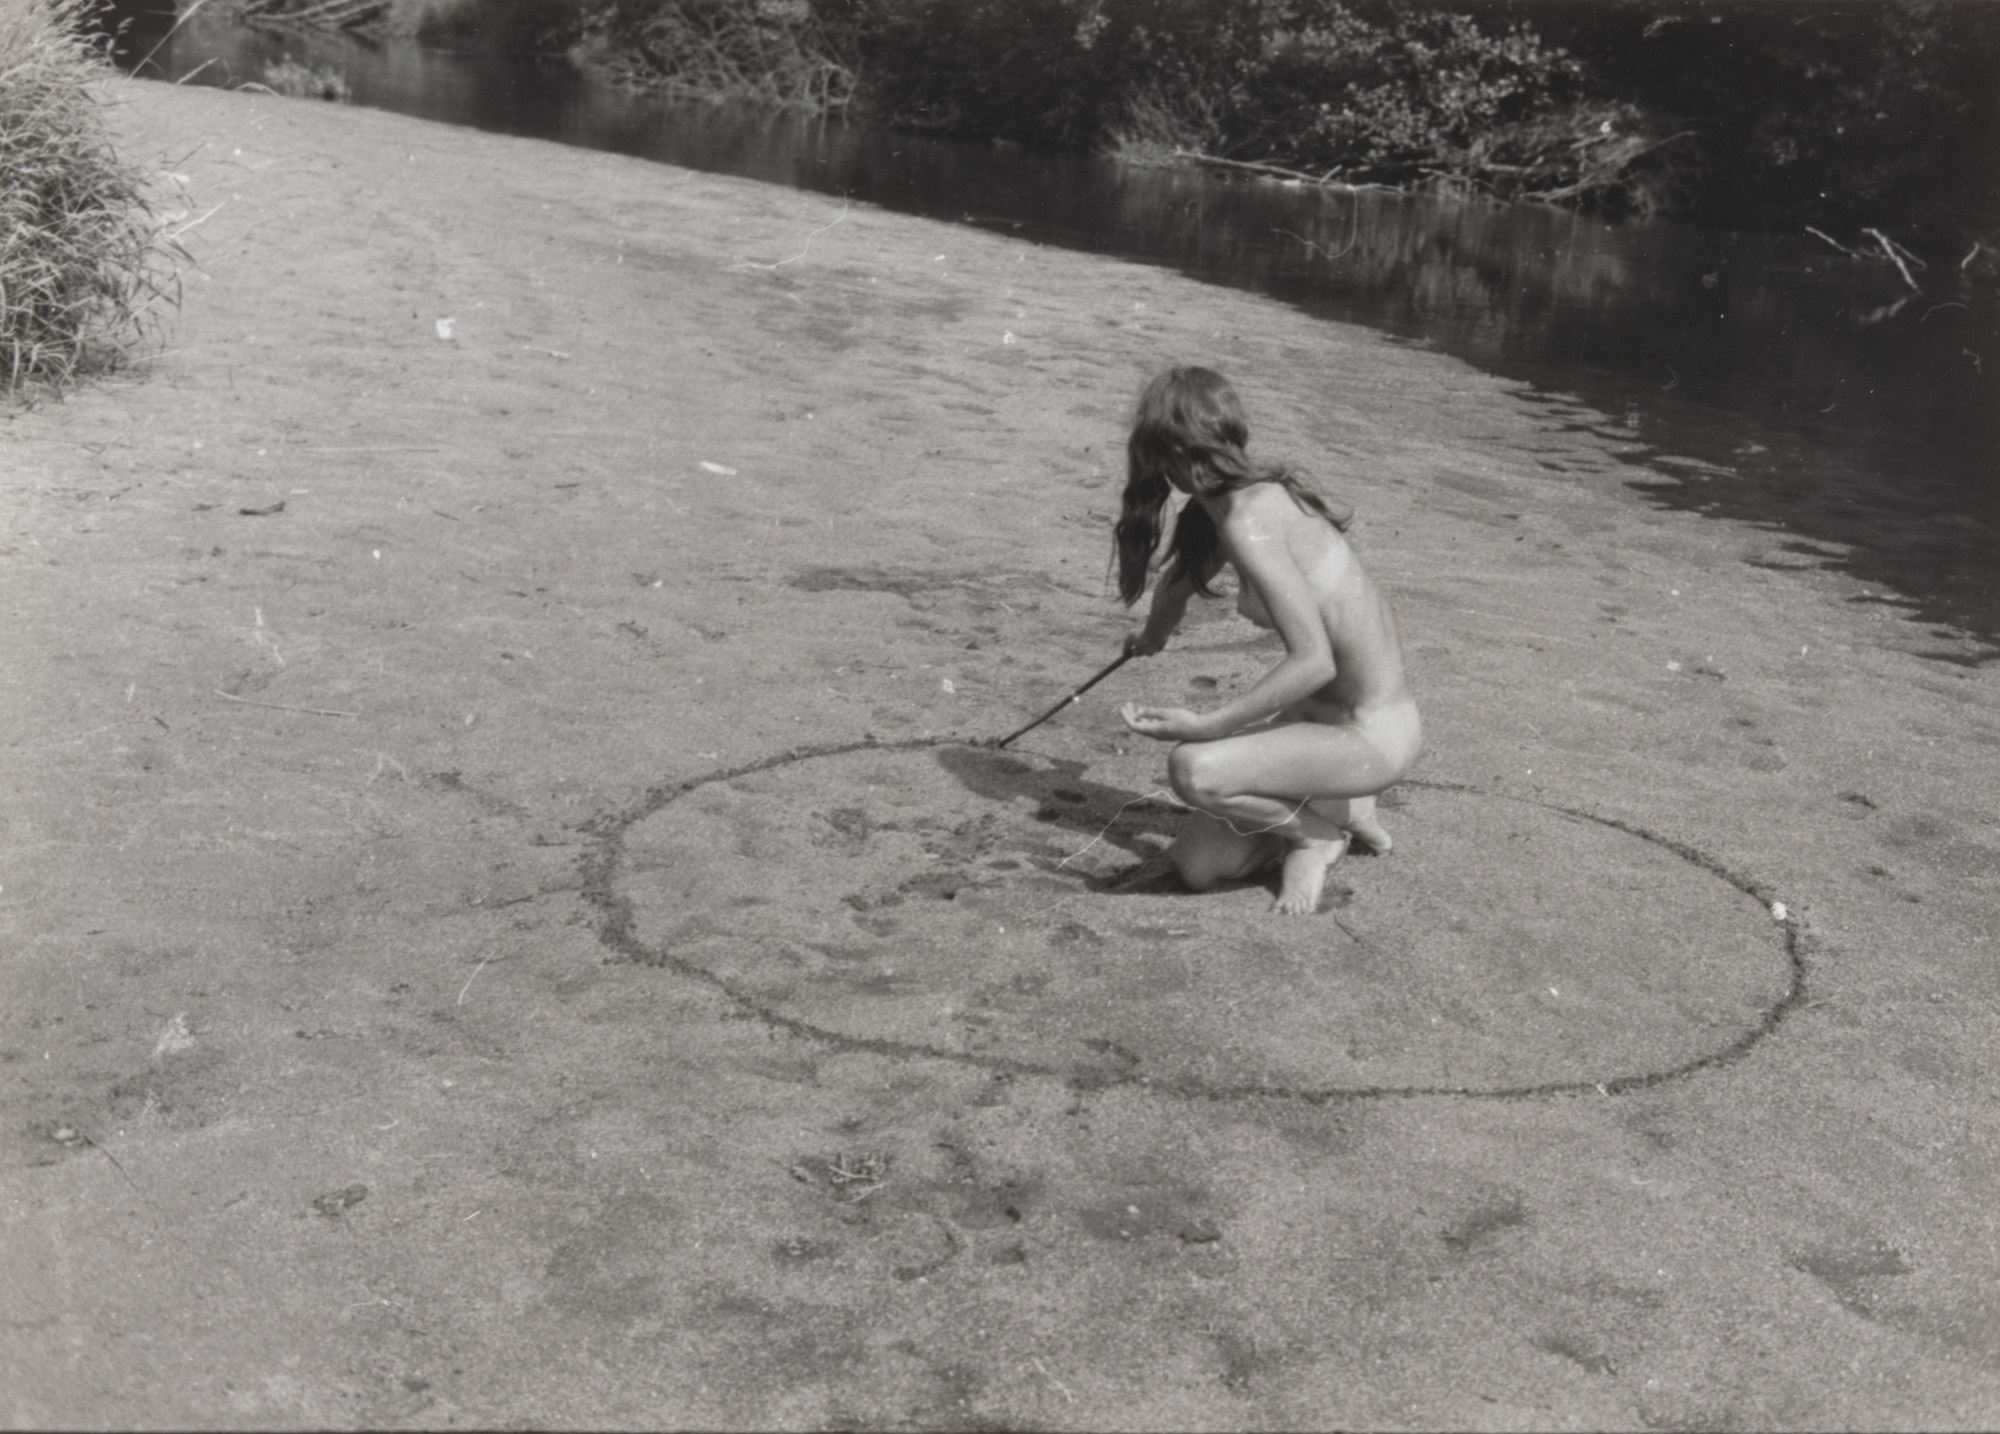 Milan Knížák. Instant Temples from Performance Files. 1971